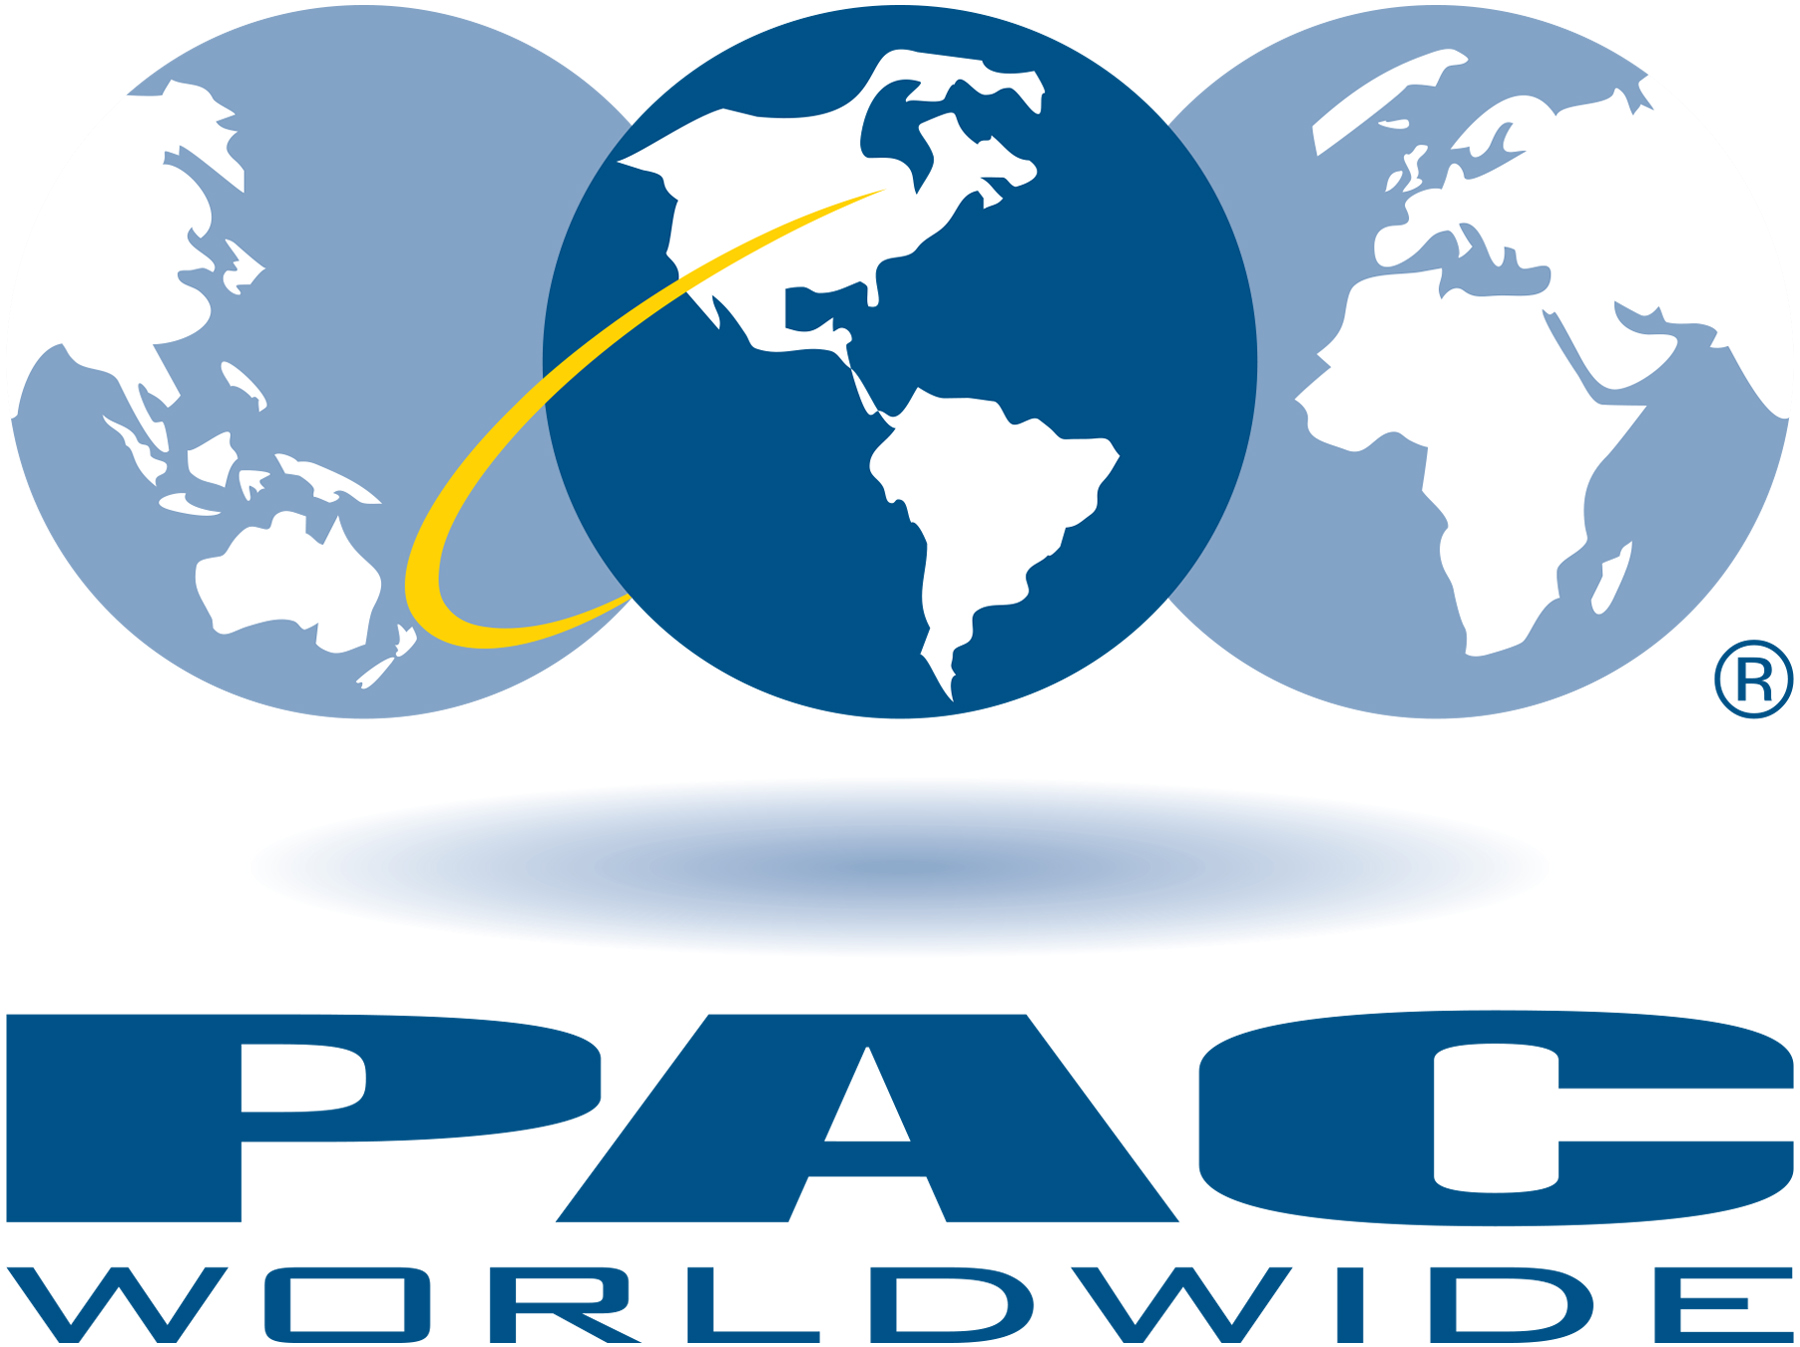 PAC worldwide logo with globe